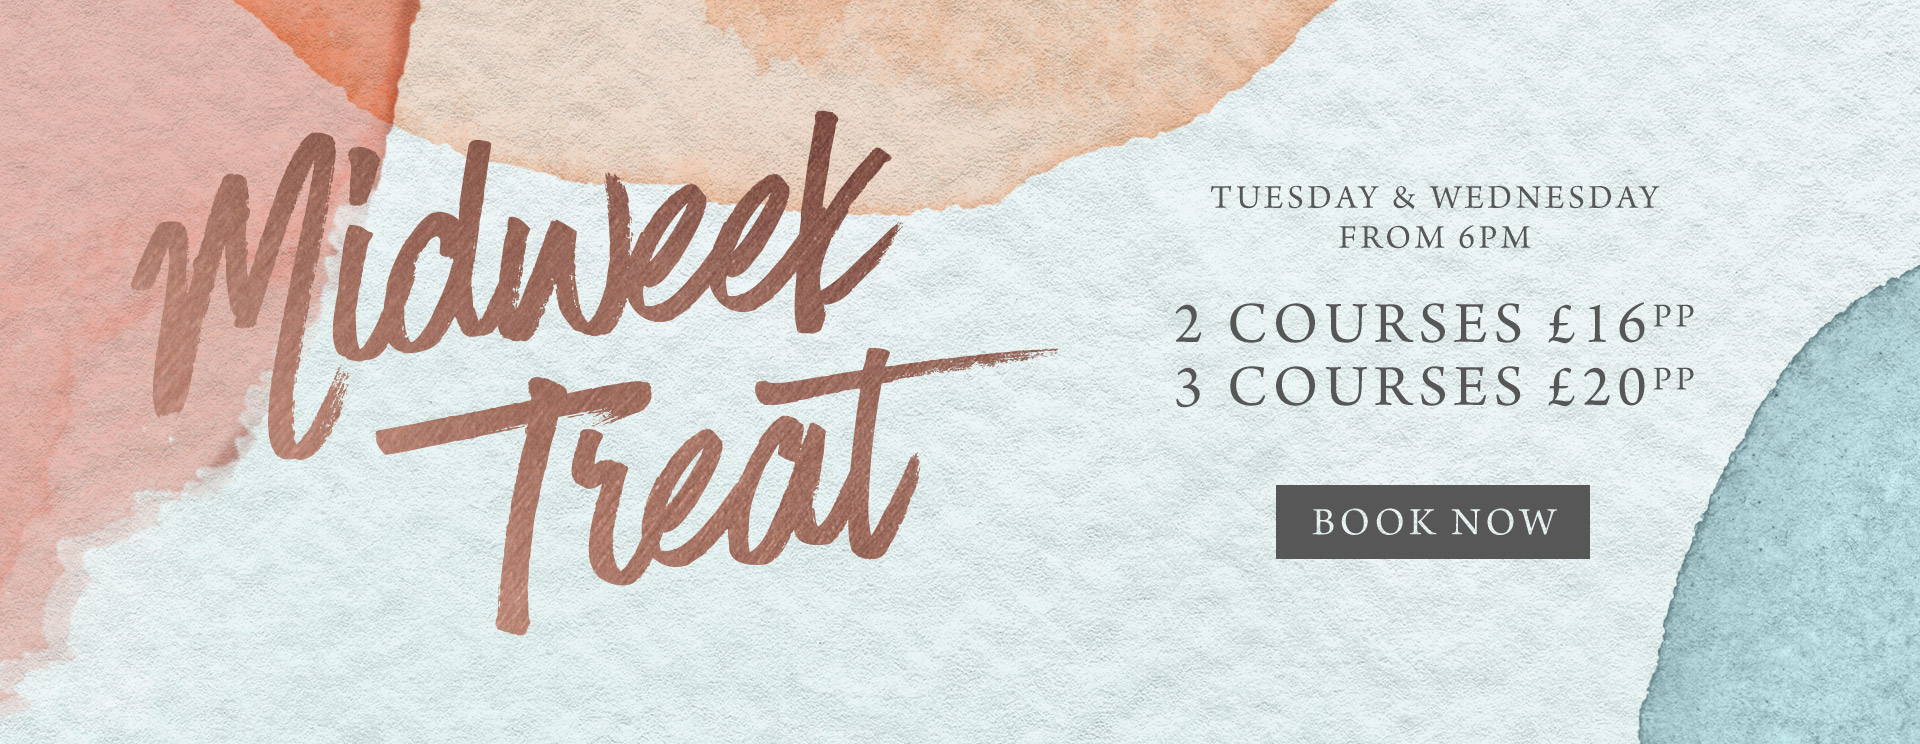 Midweek treat at The Pine Marten - Book now